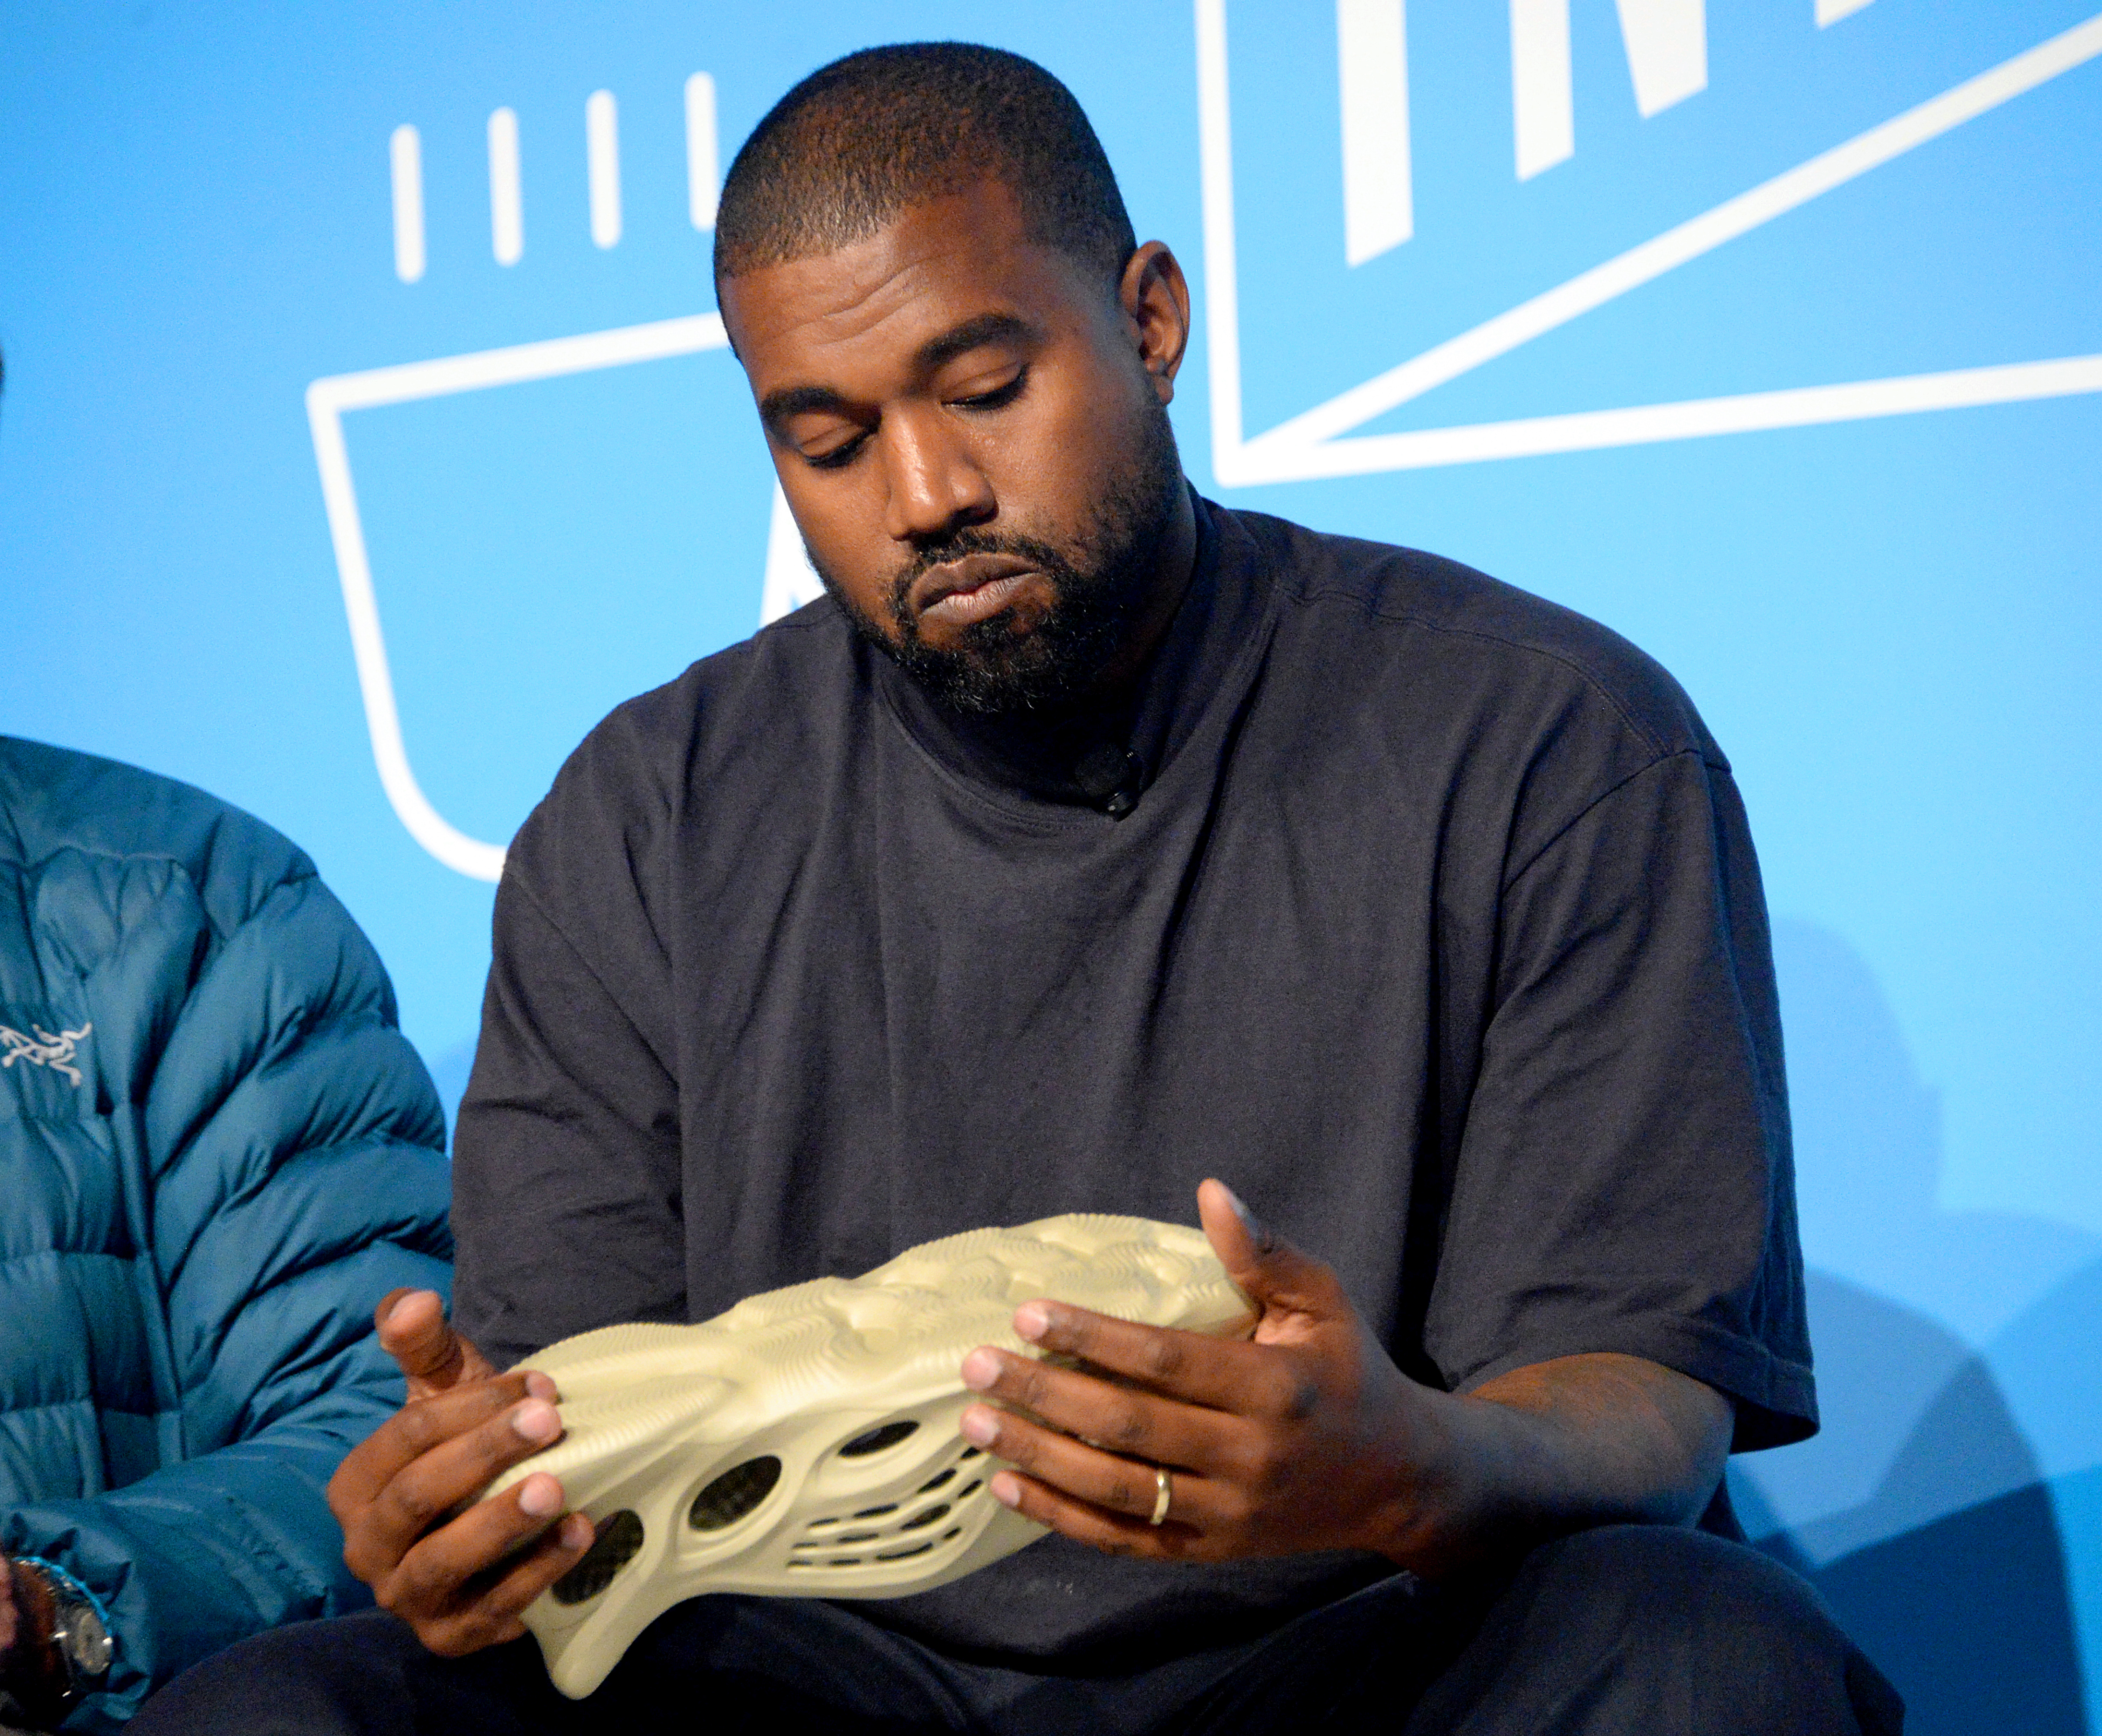 Walmart Removes Fake Foam Runners Kanye West Sued Over